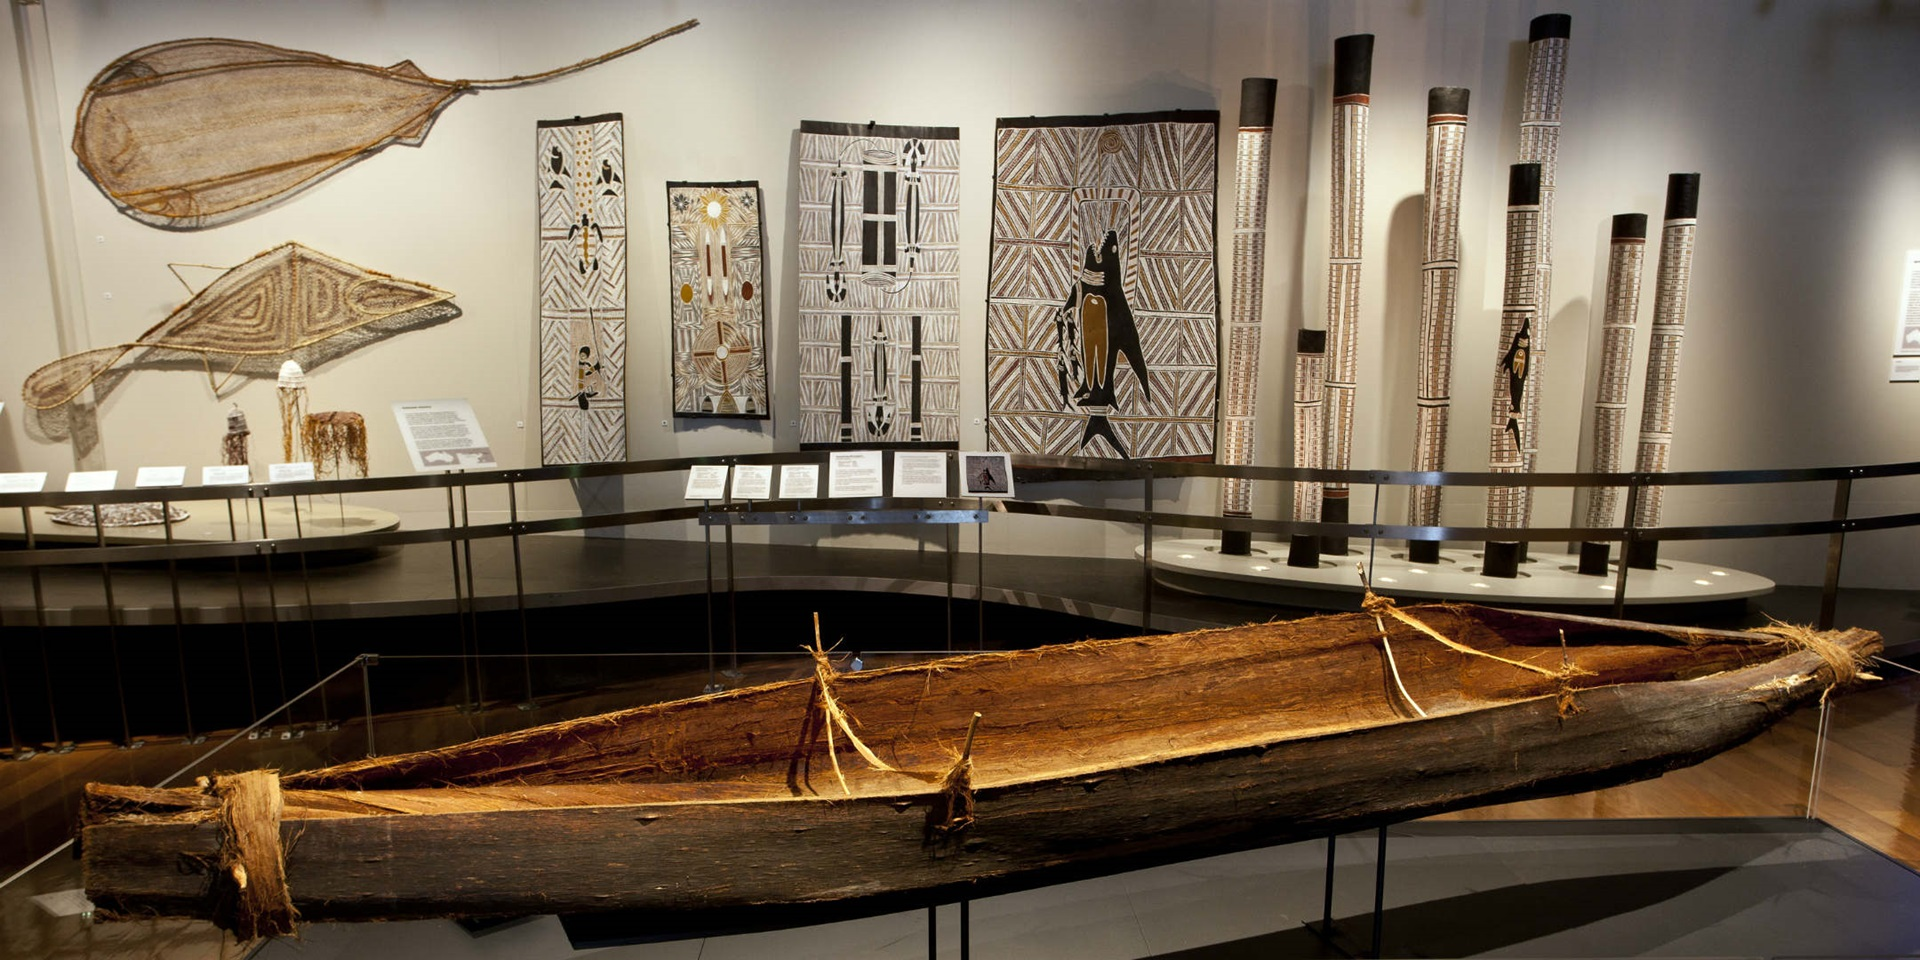 Nawi bark canoe on display in the Eora First People gallery, August 06, 2015. Featured in the background a selection of indigenous Australian woven sculptures, bark paintings and burial poles